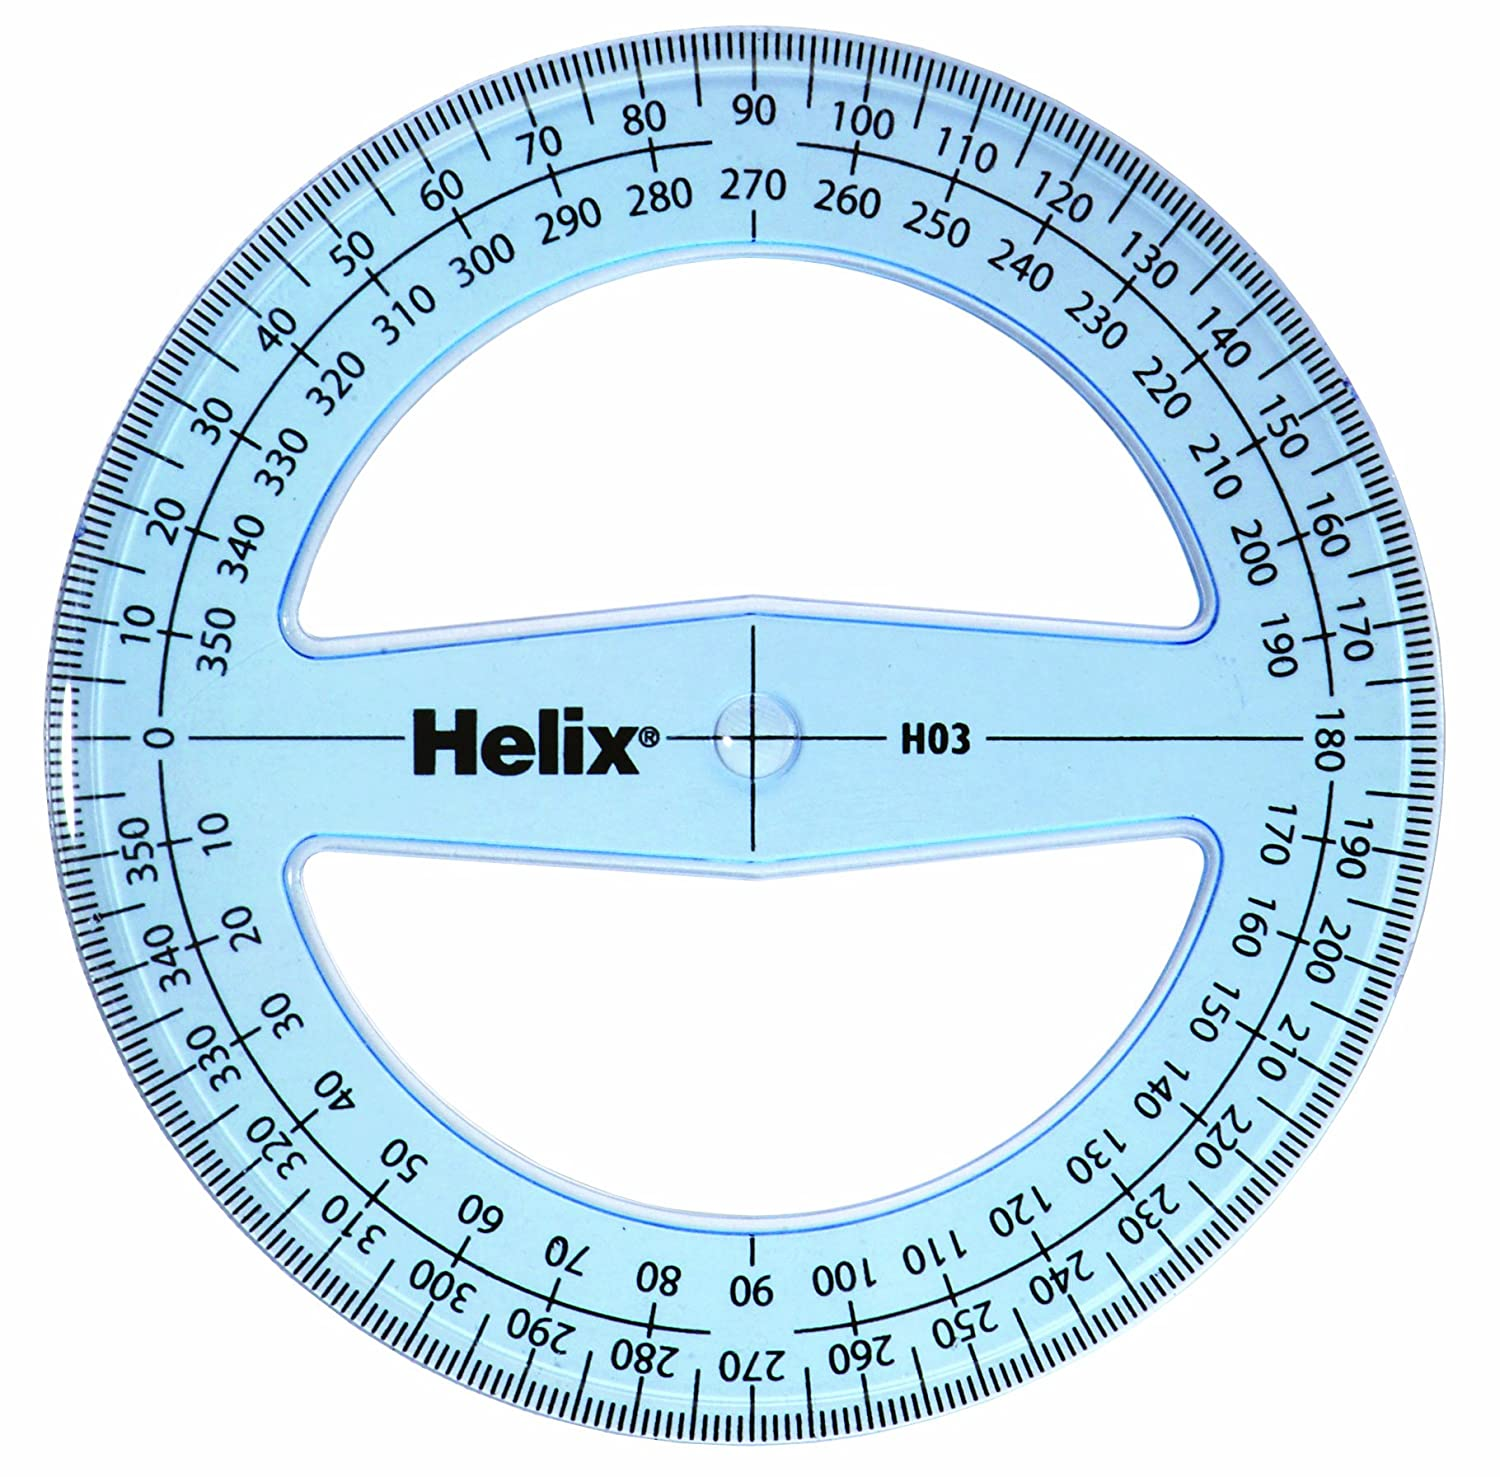 360 degree protractor template eliolera circular protractor template eliolera pronofoot35fo Gallery